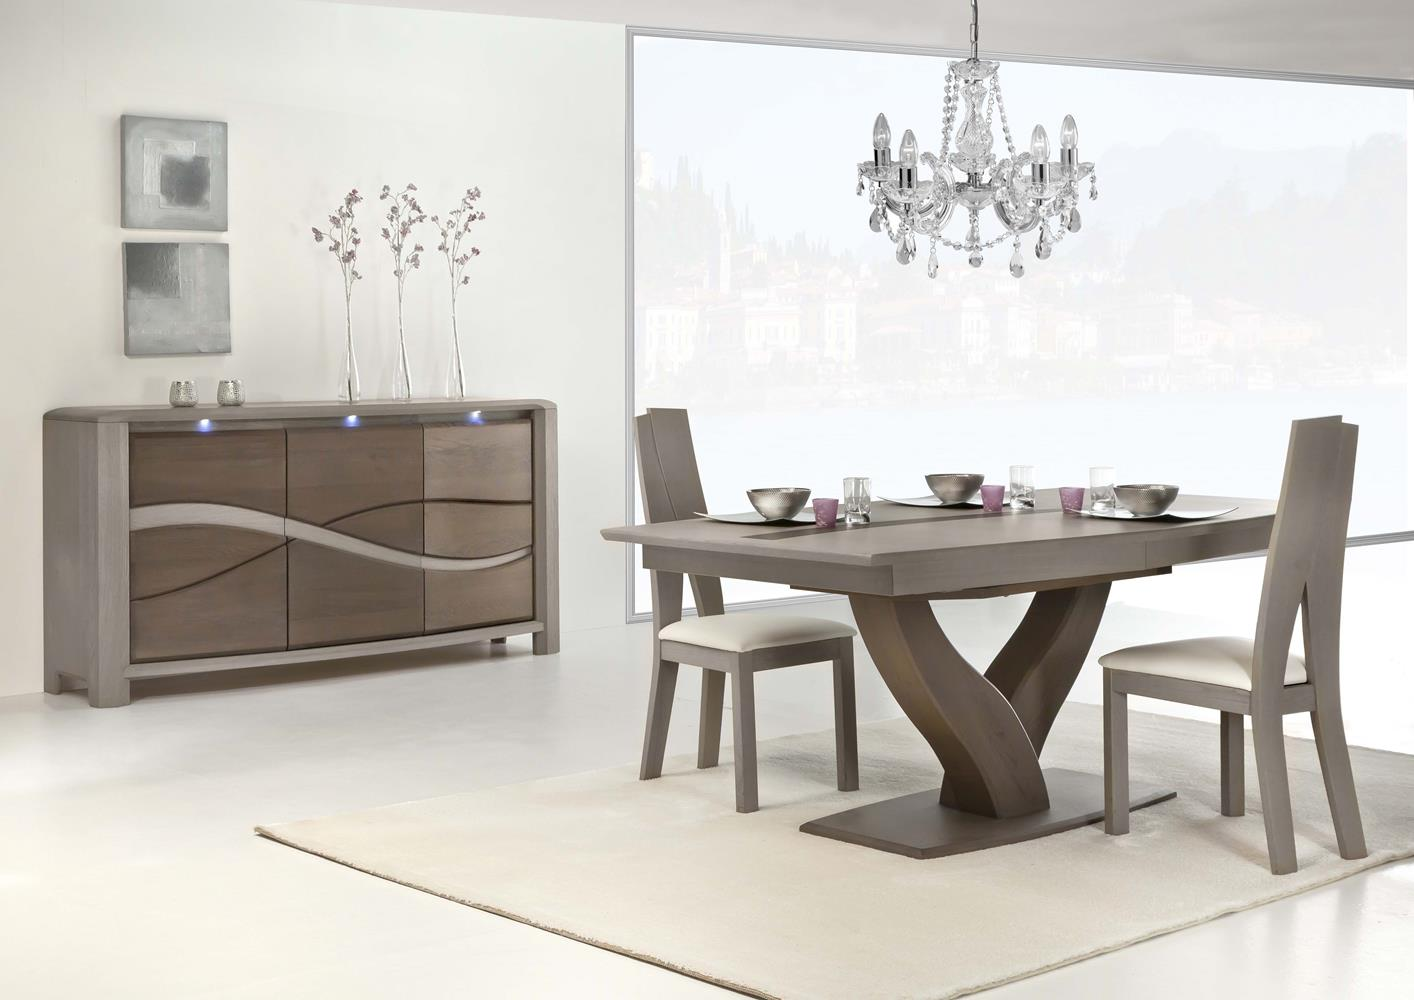 acheter votre table moderne pied central y en ch ne massif chez simeuble. Black Bedroom Furniture Sets. Home Design Ideas